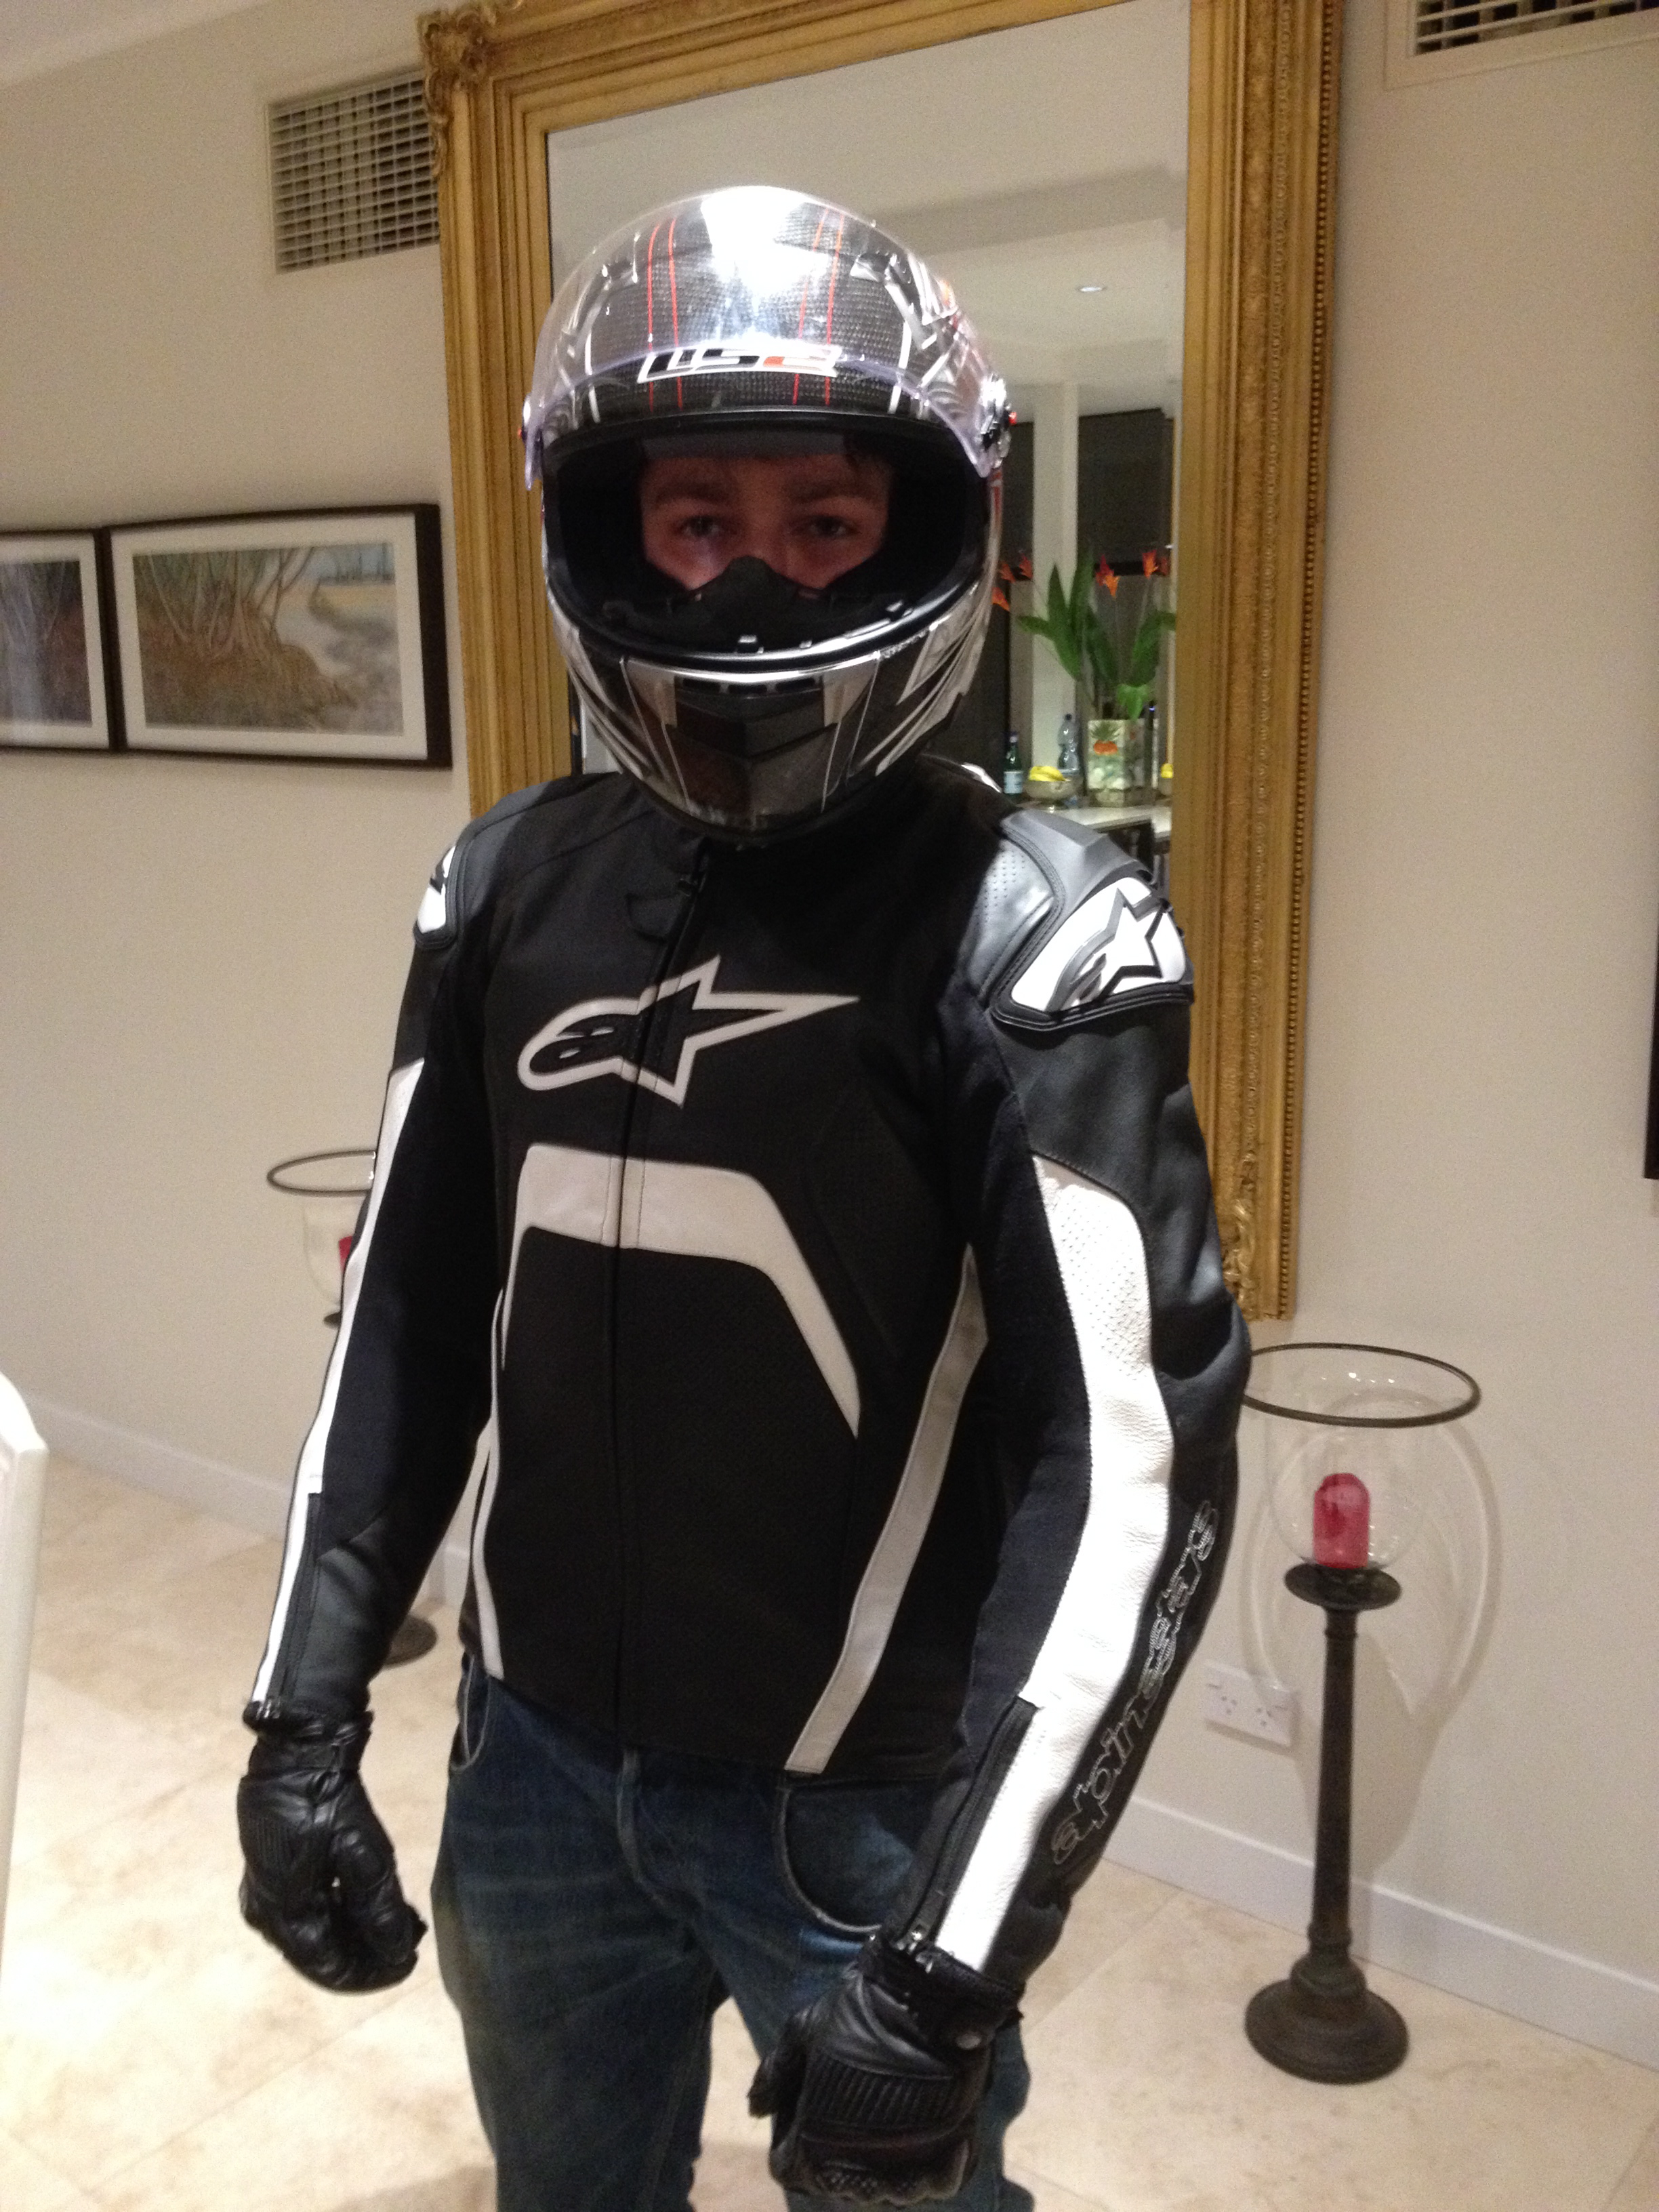 File:Motorcyclist in protective clothing front.JPG - Wikimedia Commons